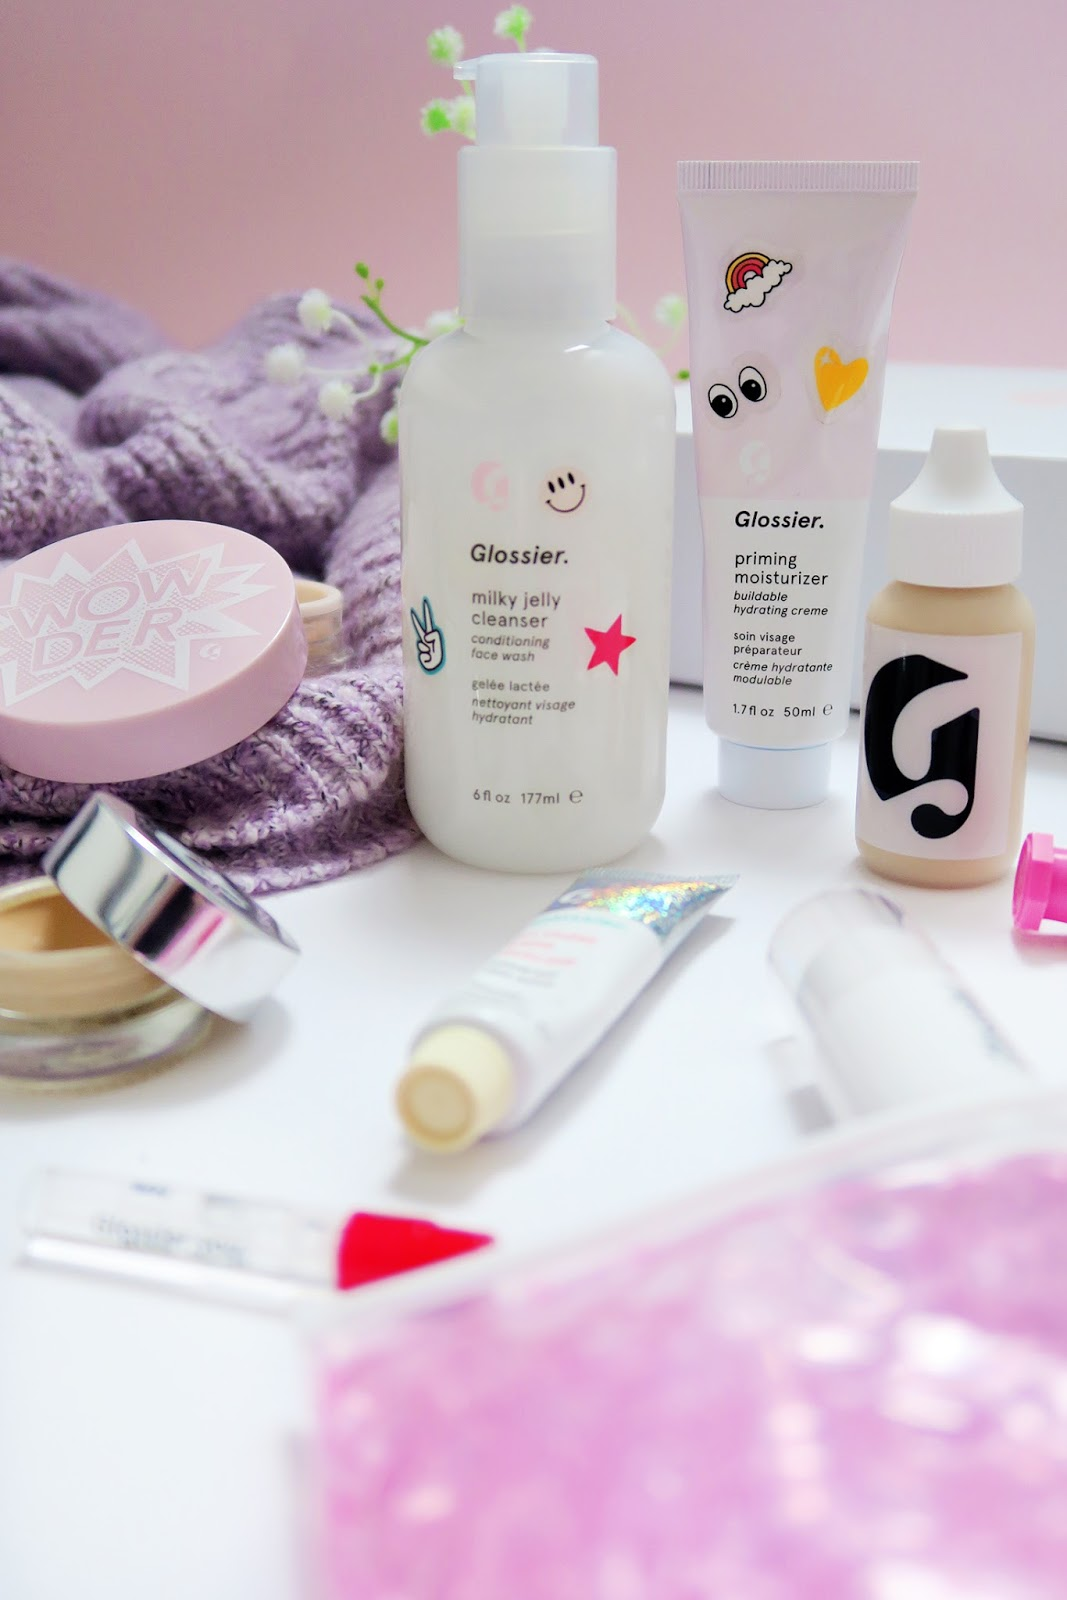 testing-glossier-in-the-uk